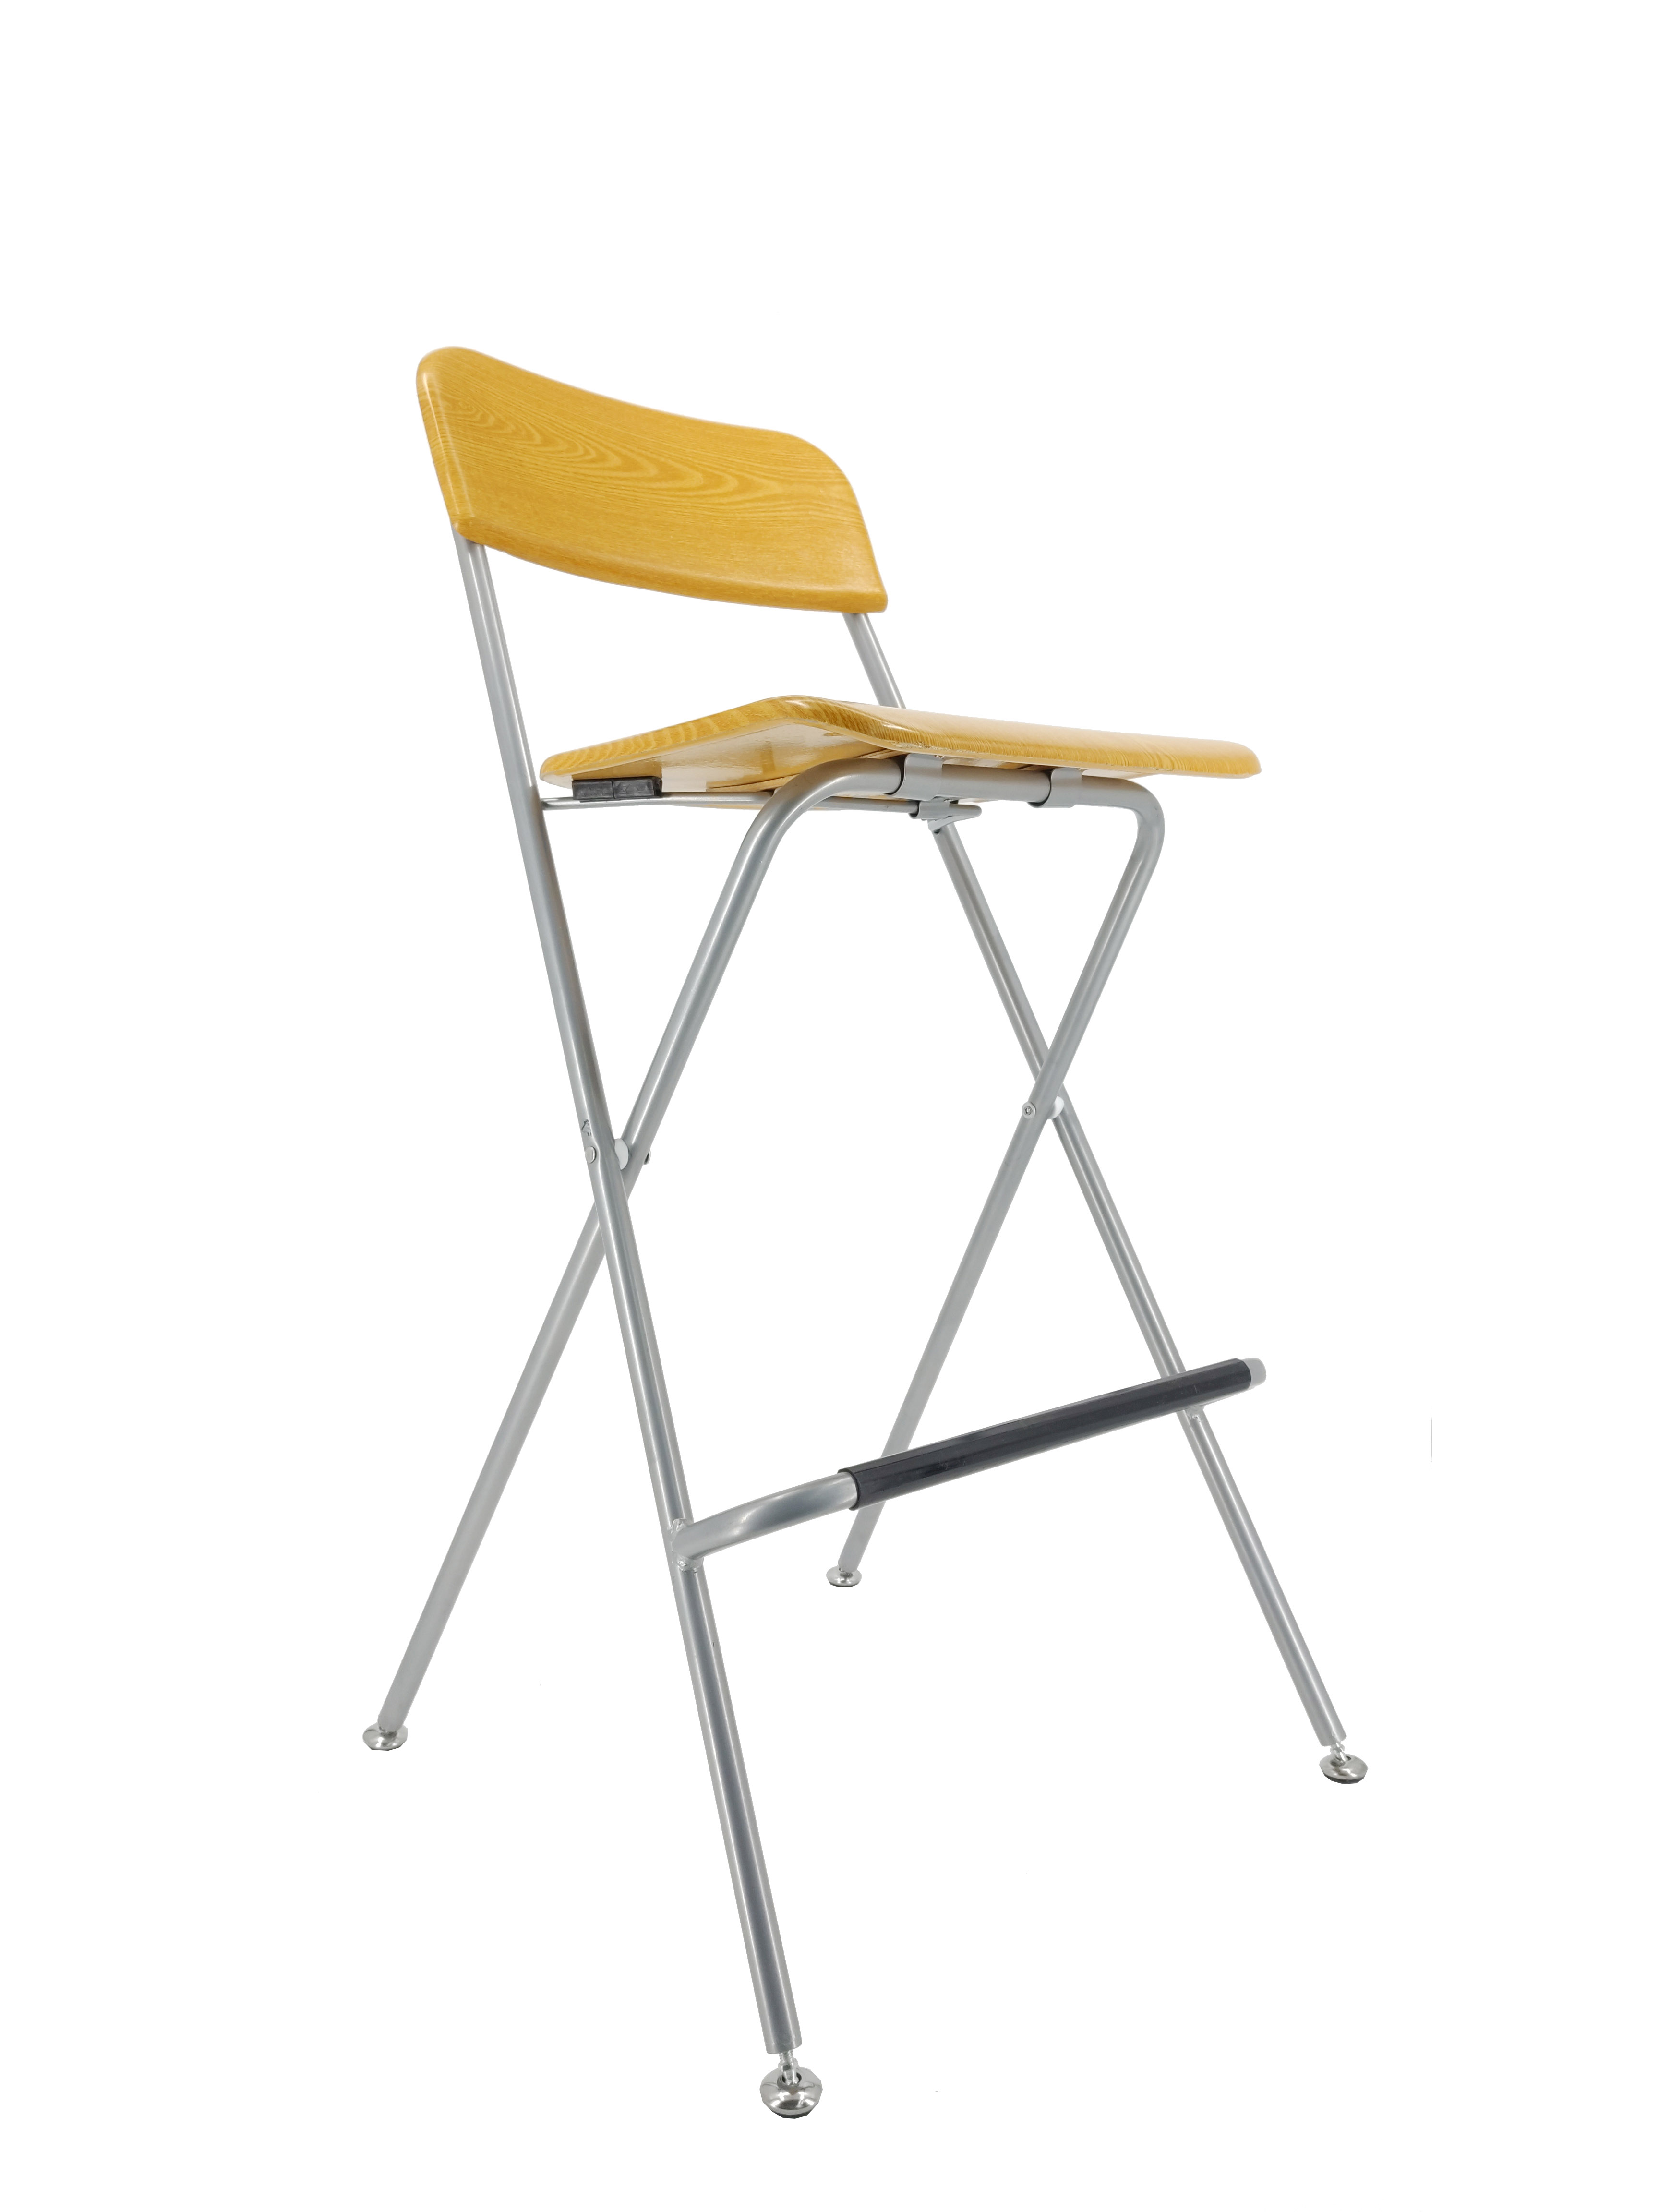 24 inch high folding chairs used kermit chair for sale bar bistro wood metal